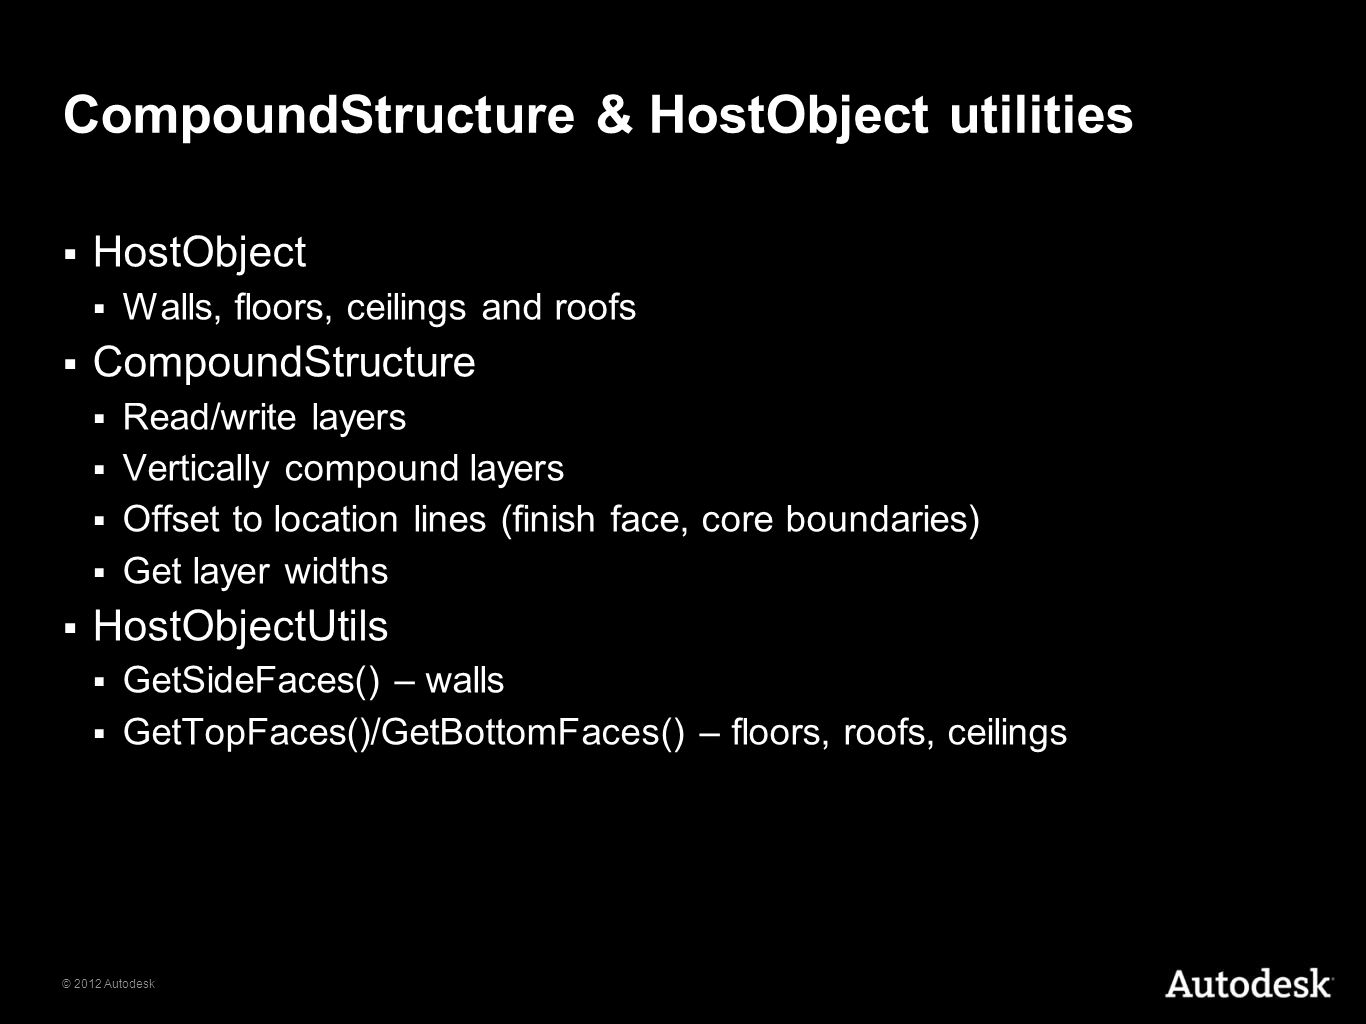 CompoundStructure & HostObject utilities